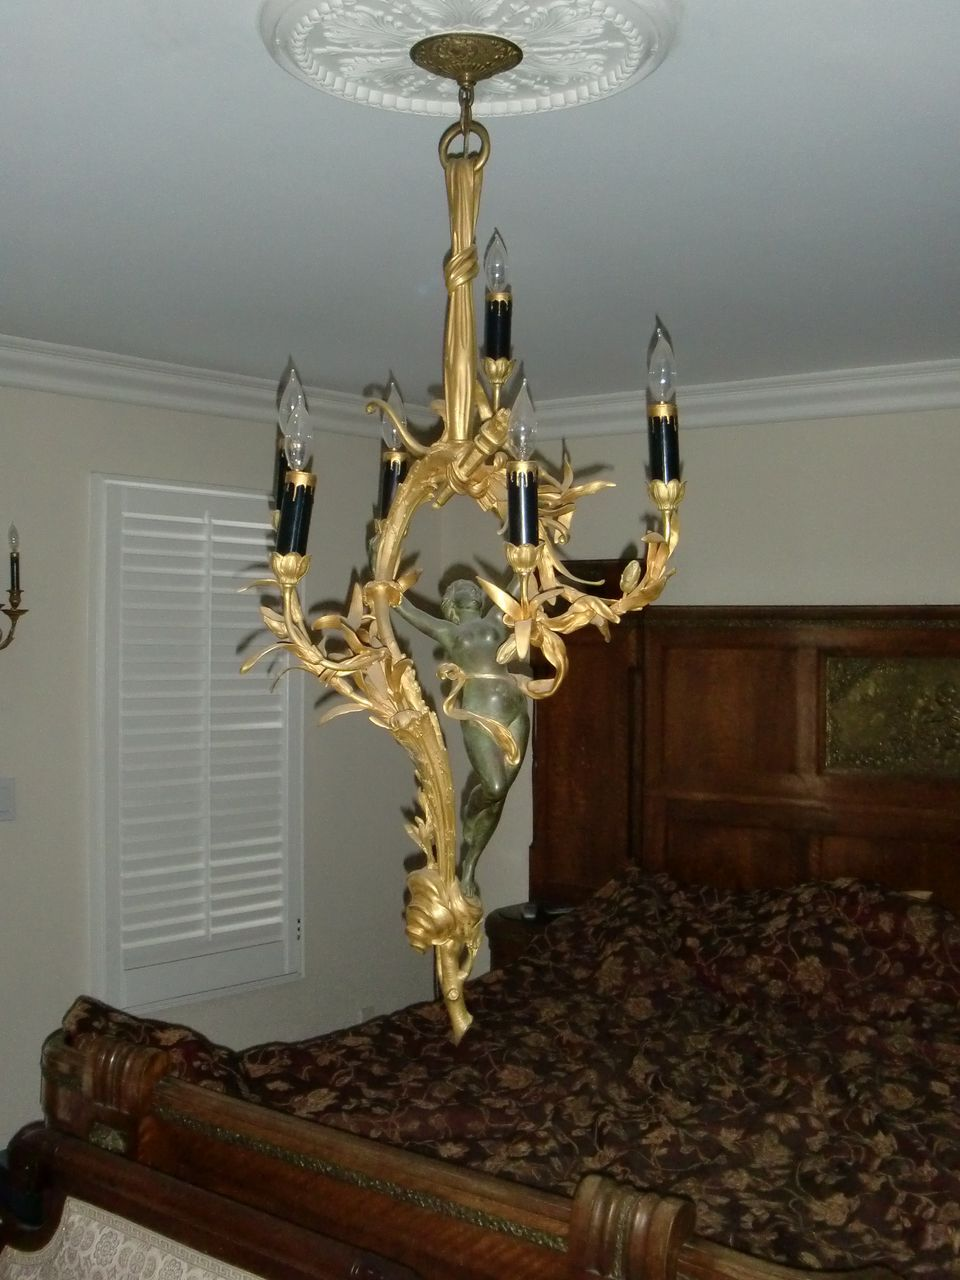 Antique French gilded bronze figural chandelier Madonna , museum quality,  c.1880 - Antique French Gilded Bronze Figural Chandelier Madonna , Museum